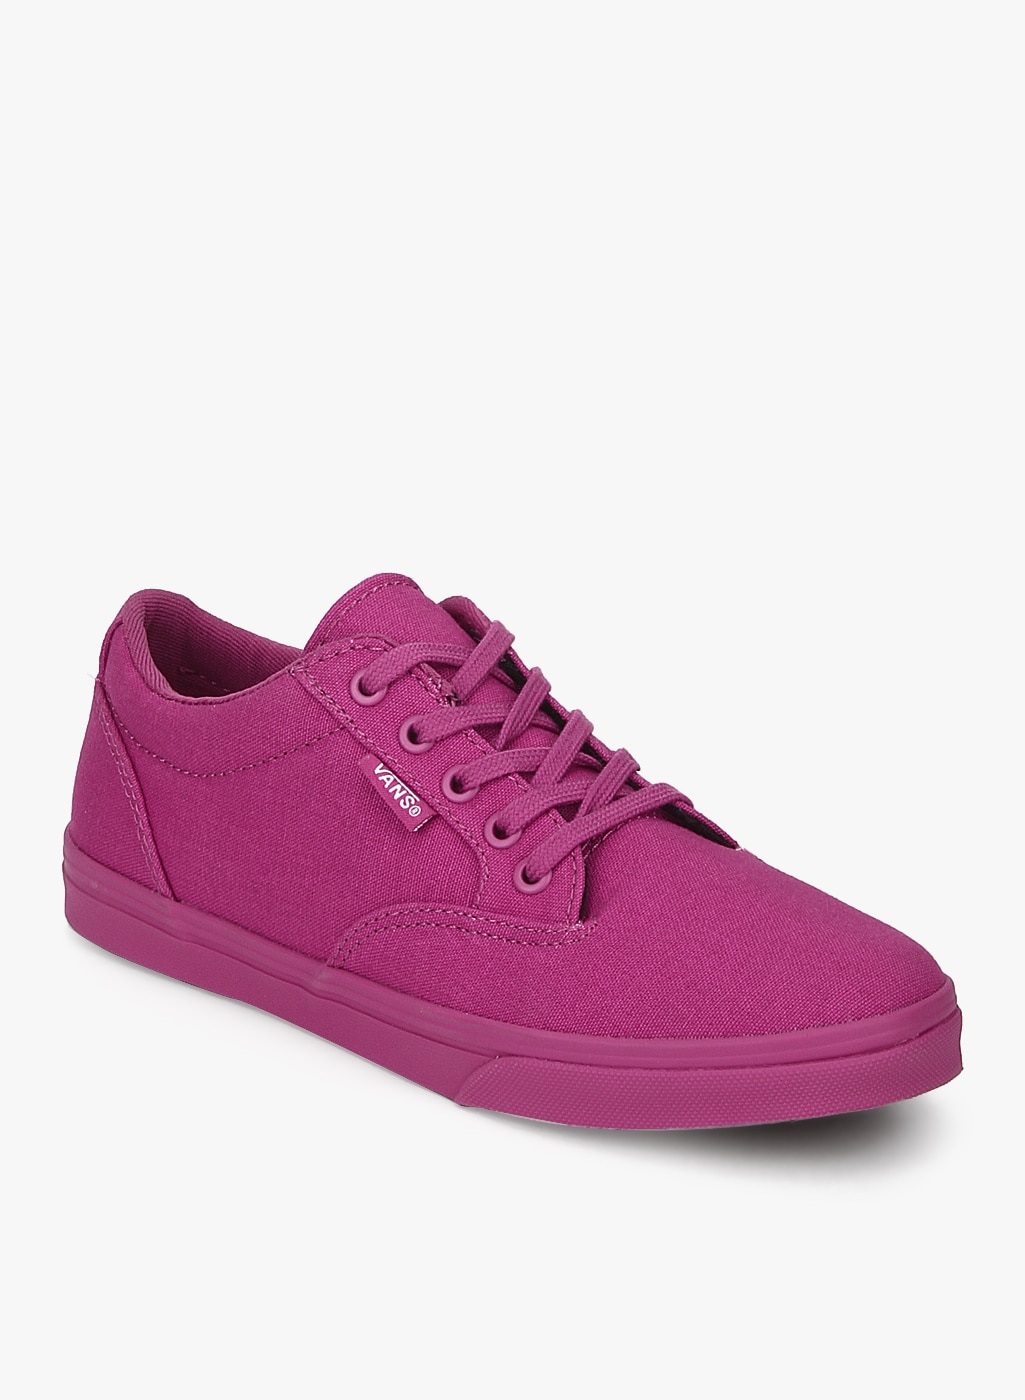 d0ed9ab4 Women Sneakers Vans - Buy Women Sneakers Vans online in India - Jabong